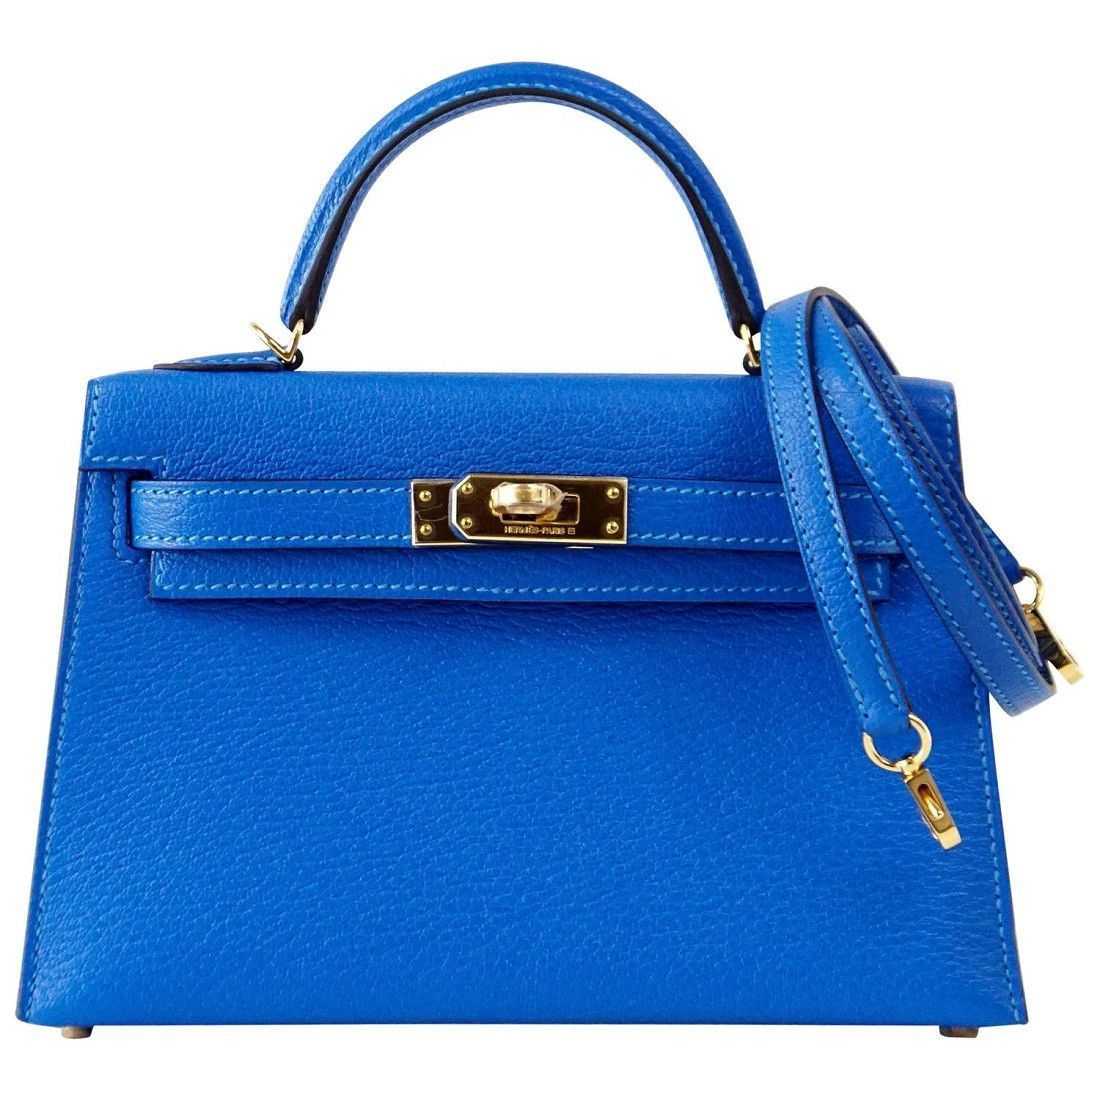 a58110196986 The talk about town HERMES Limited Edition Kelly Mini 20 ll in coveted  Chevre. Jewel toned Blue Hydra is exotic with gold hardware.